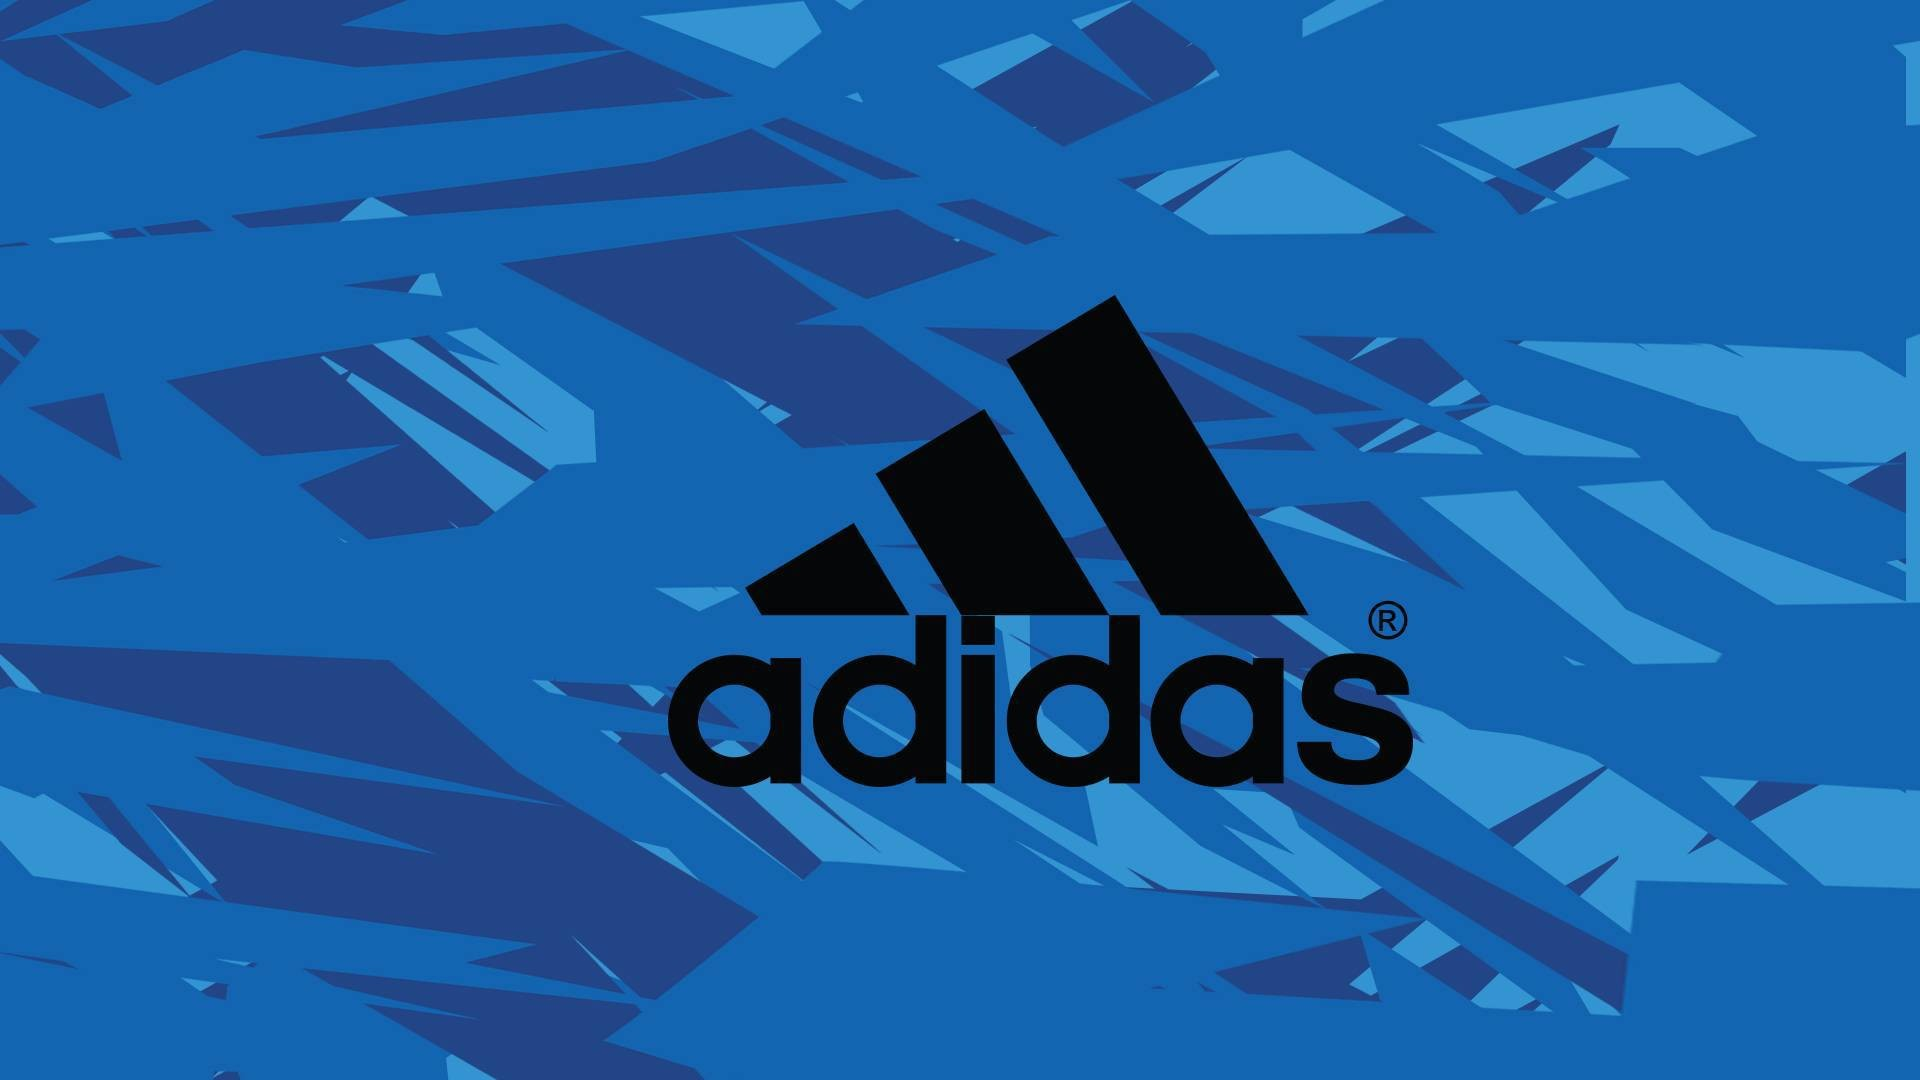 adidas original wallpaper 63 images